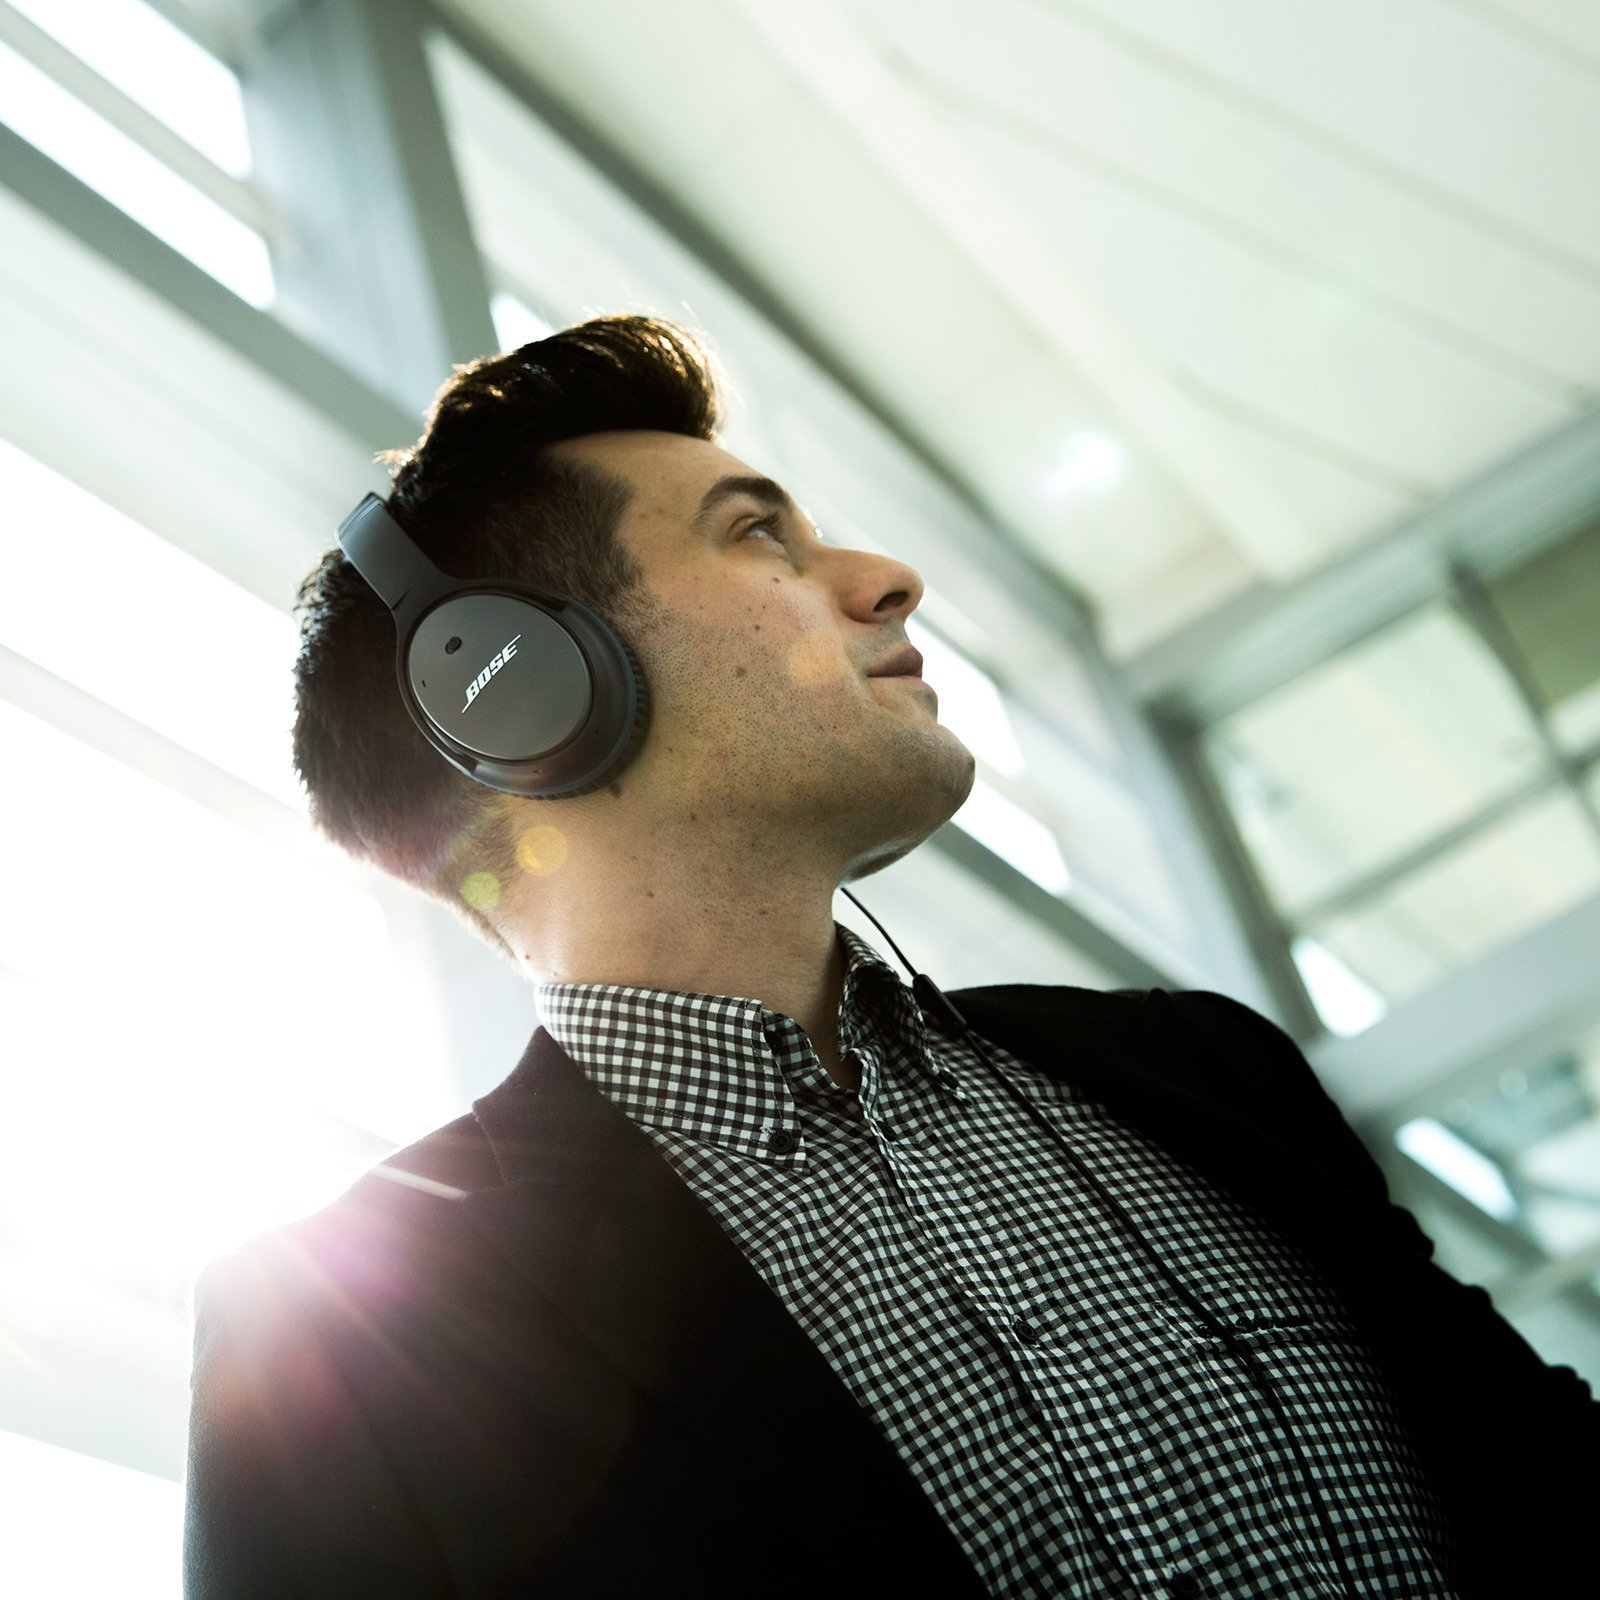 Bose QuietComfort 25 Acoustic Noise Cancelling Headphones for Apple devices - Black (wired, 3.5mm) by Bose (Image #8)